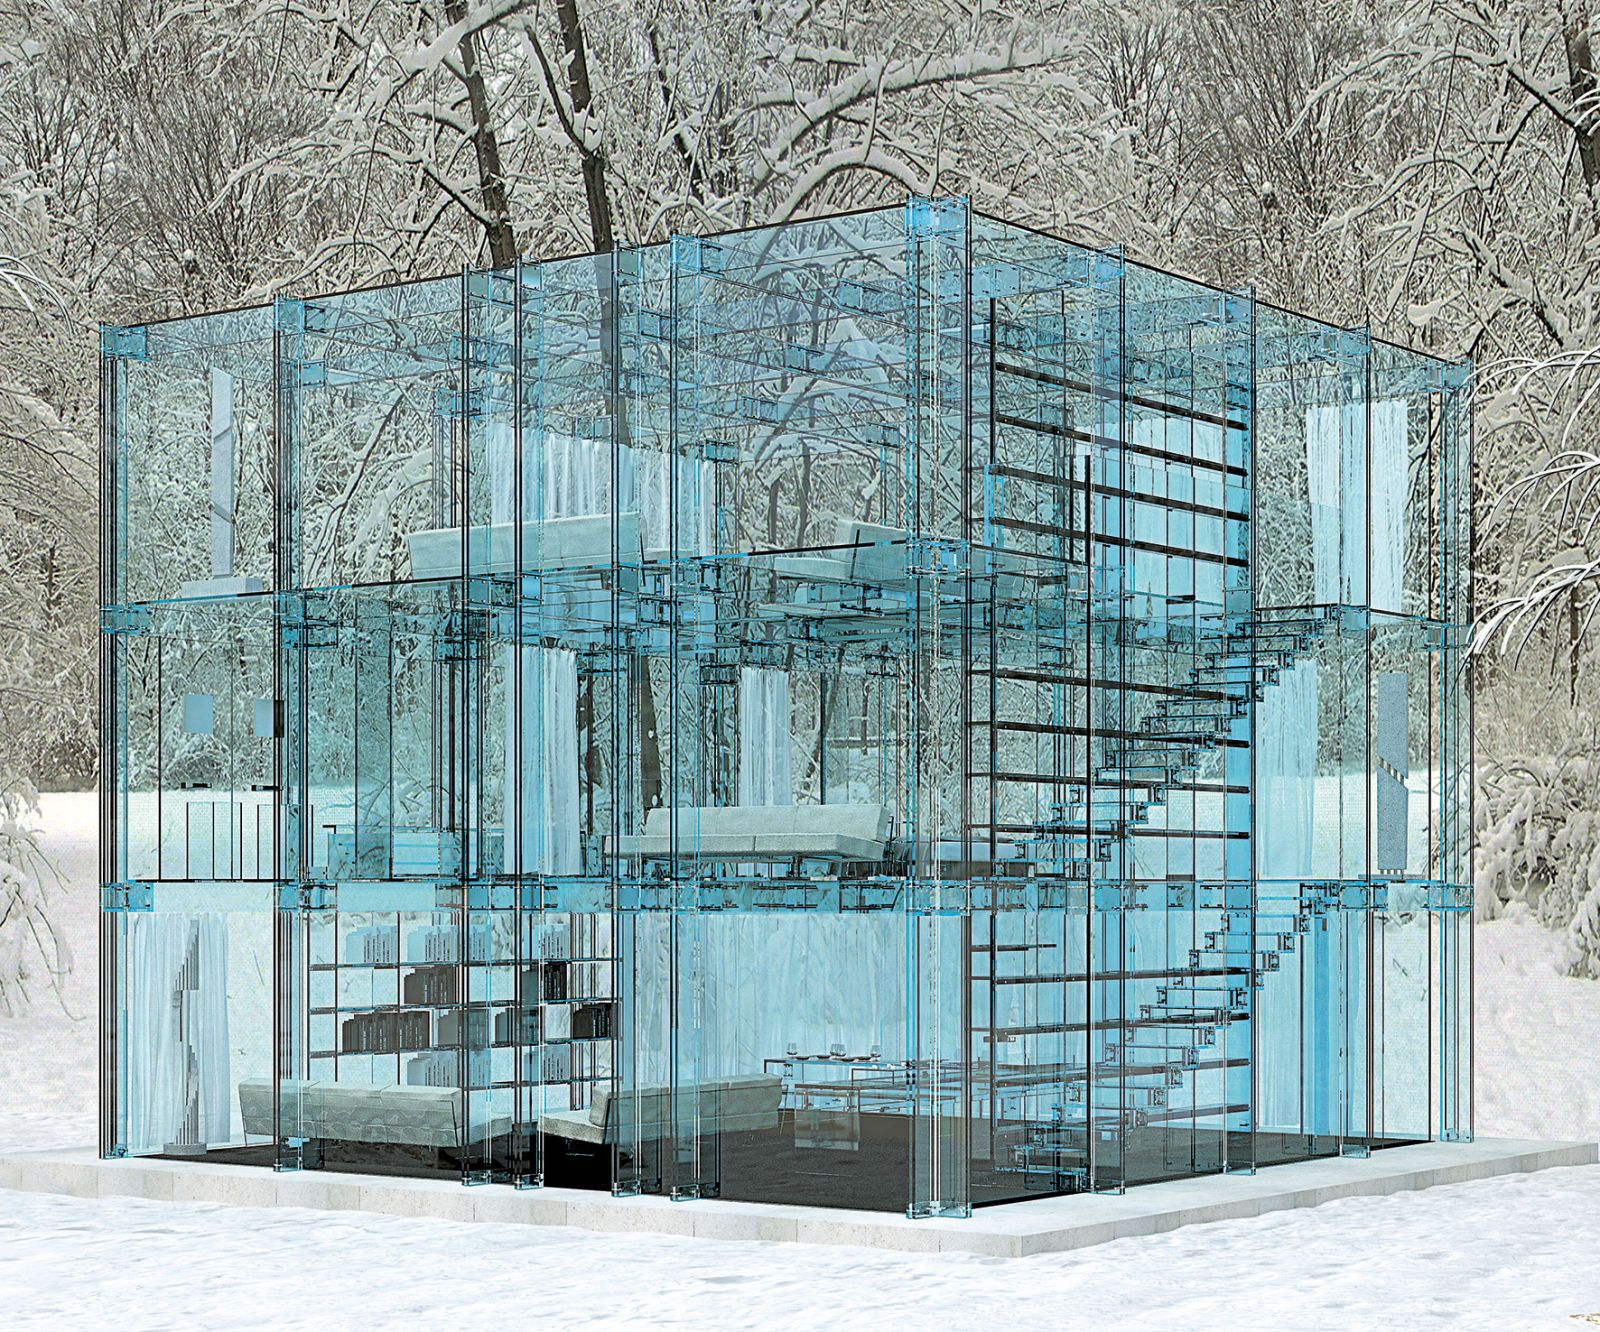 In The Italian Architect Carlo Santambrogios Version In Milan, The